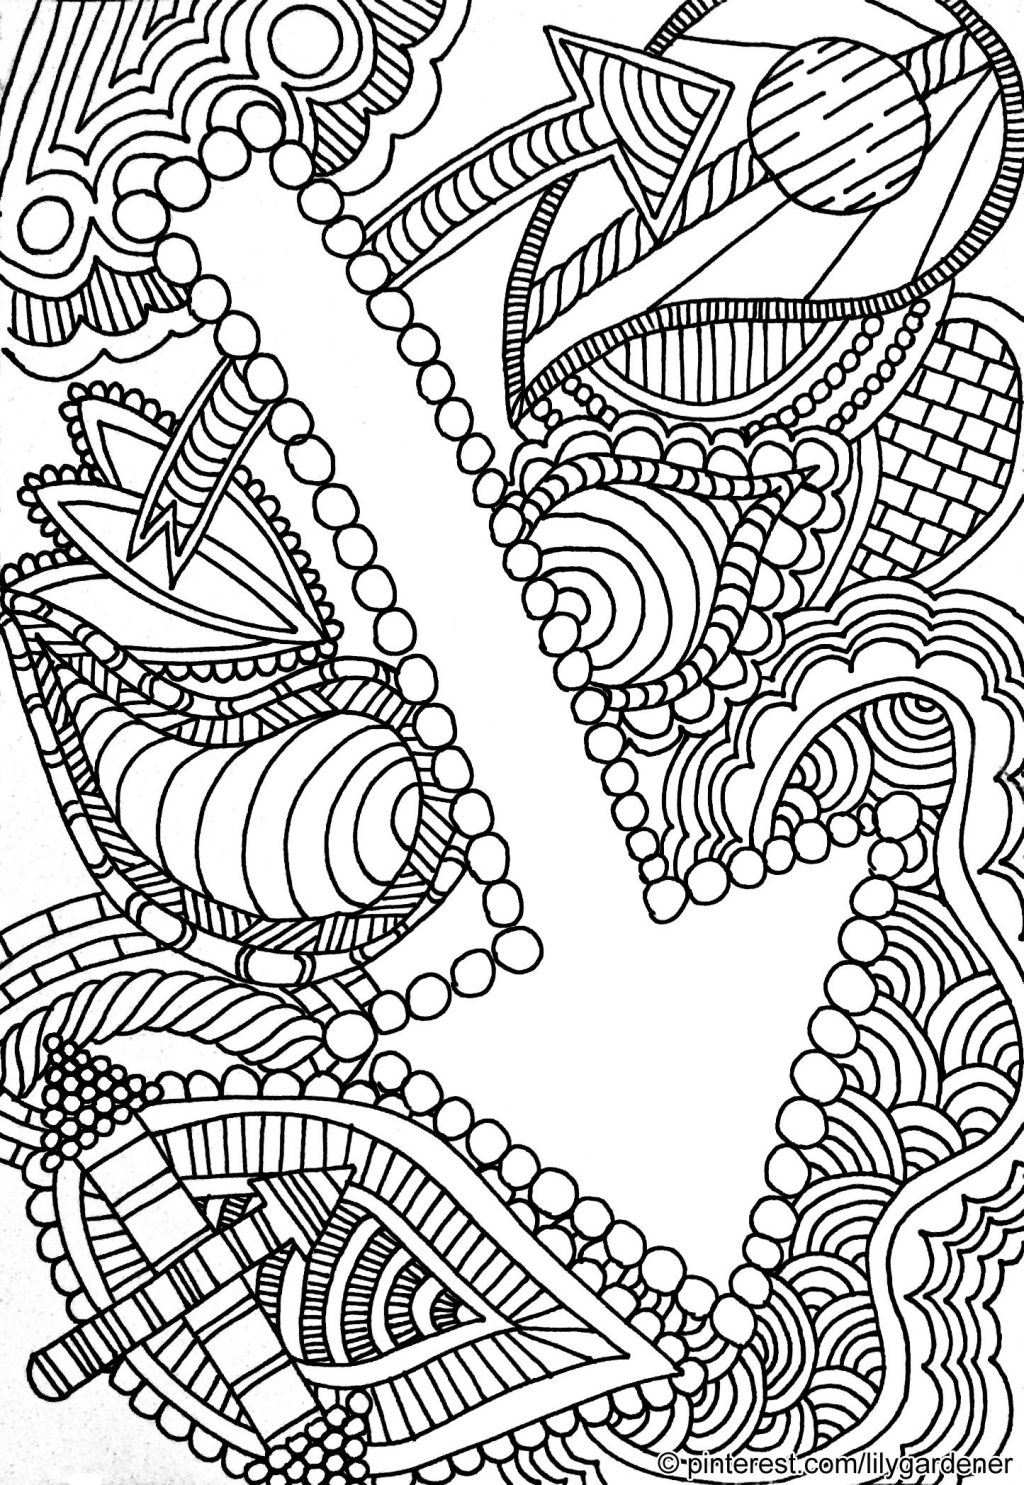 Coloring Pages For 10 Year Old Girls Coloring Pages Full Size Of Abstract Color Pages For Adults